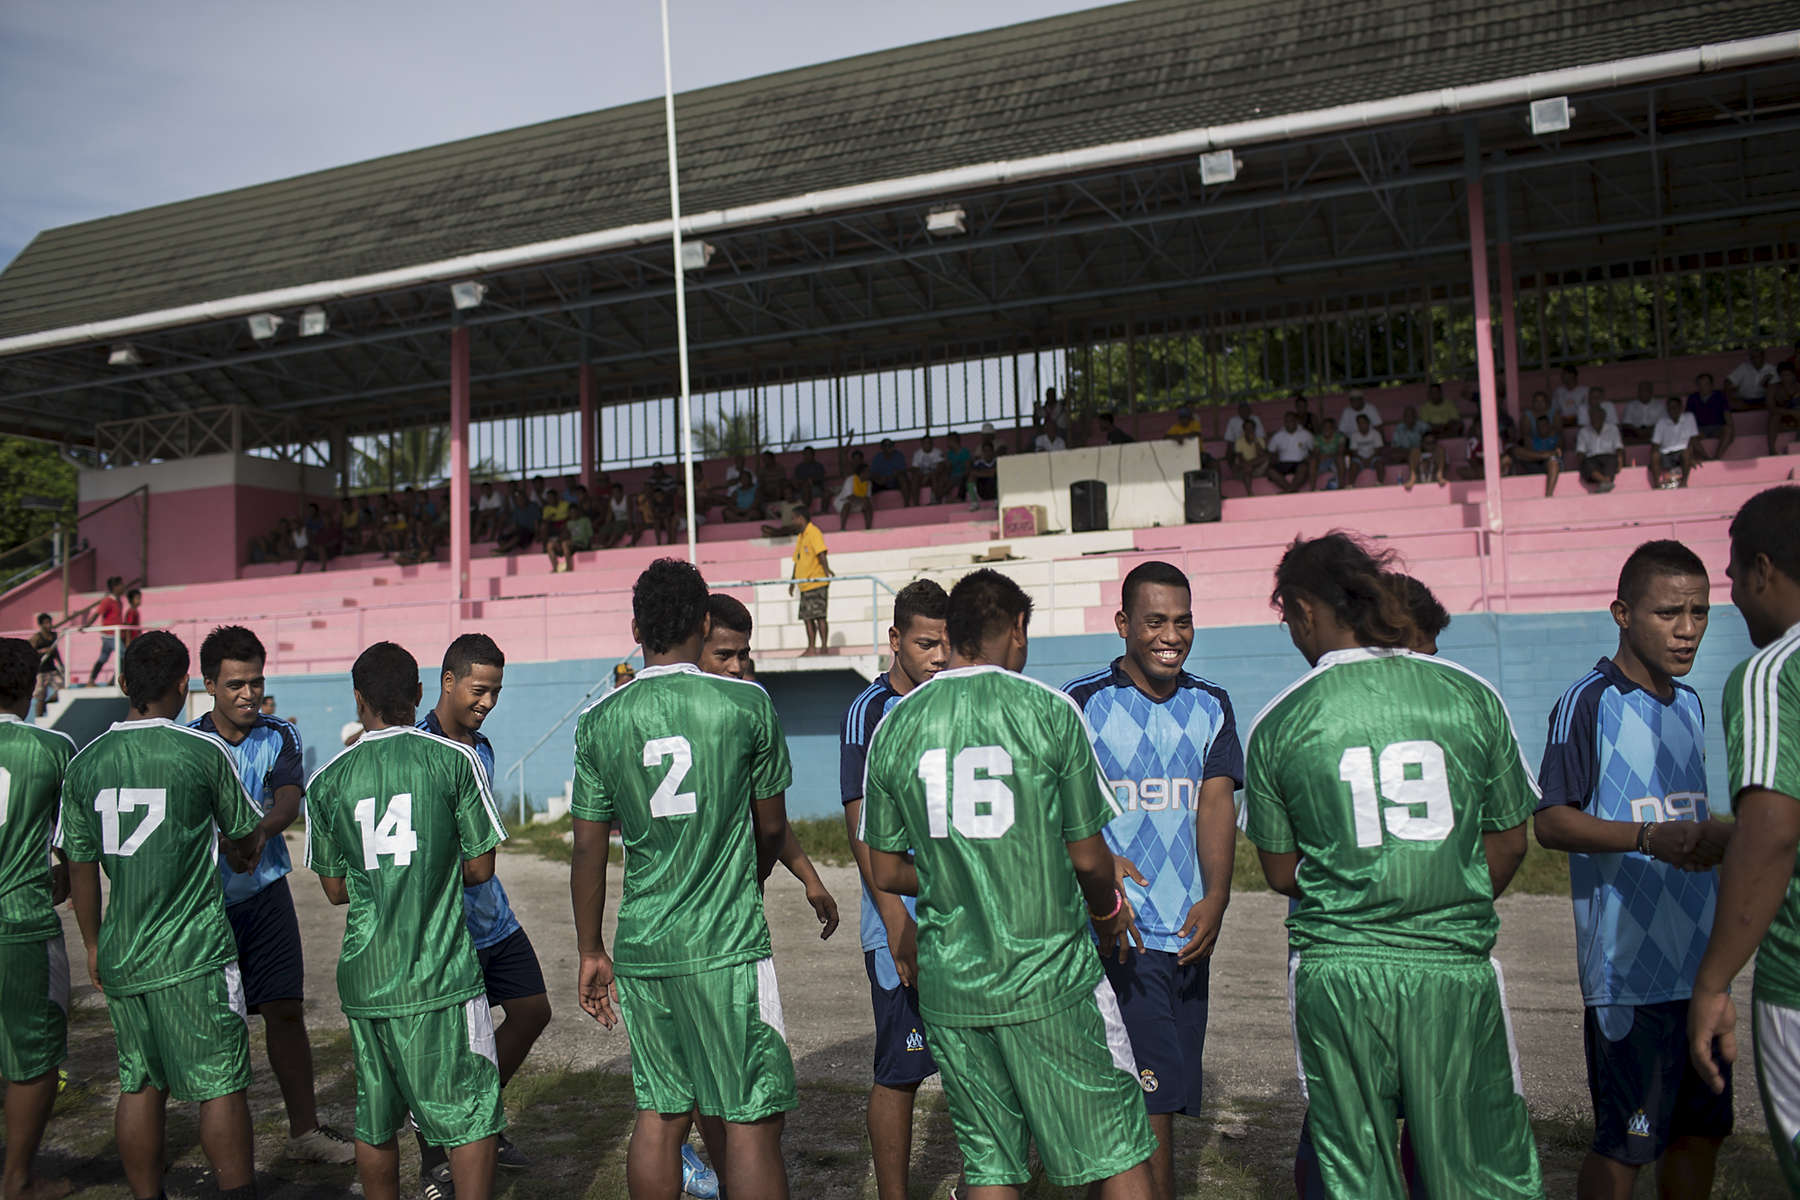 Soccer players shake hands before playing a game at the sports complex in Bairiki village.